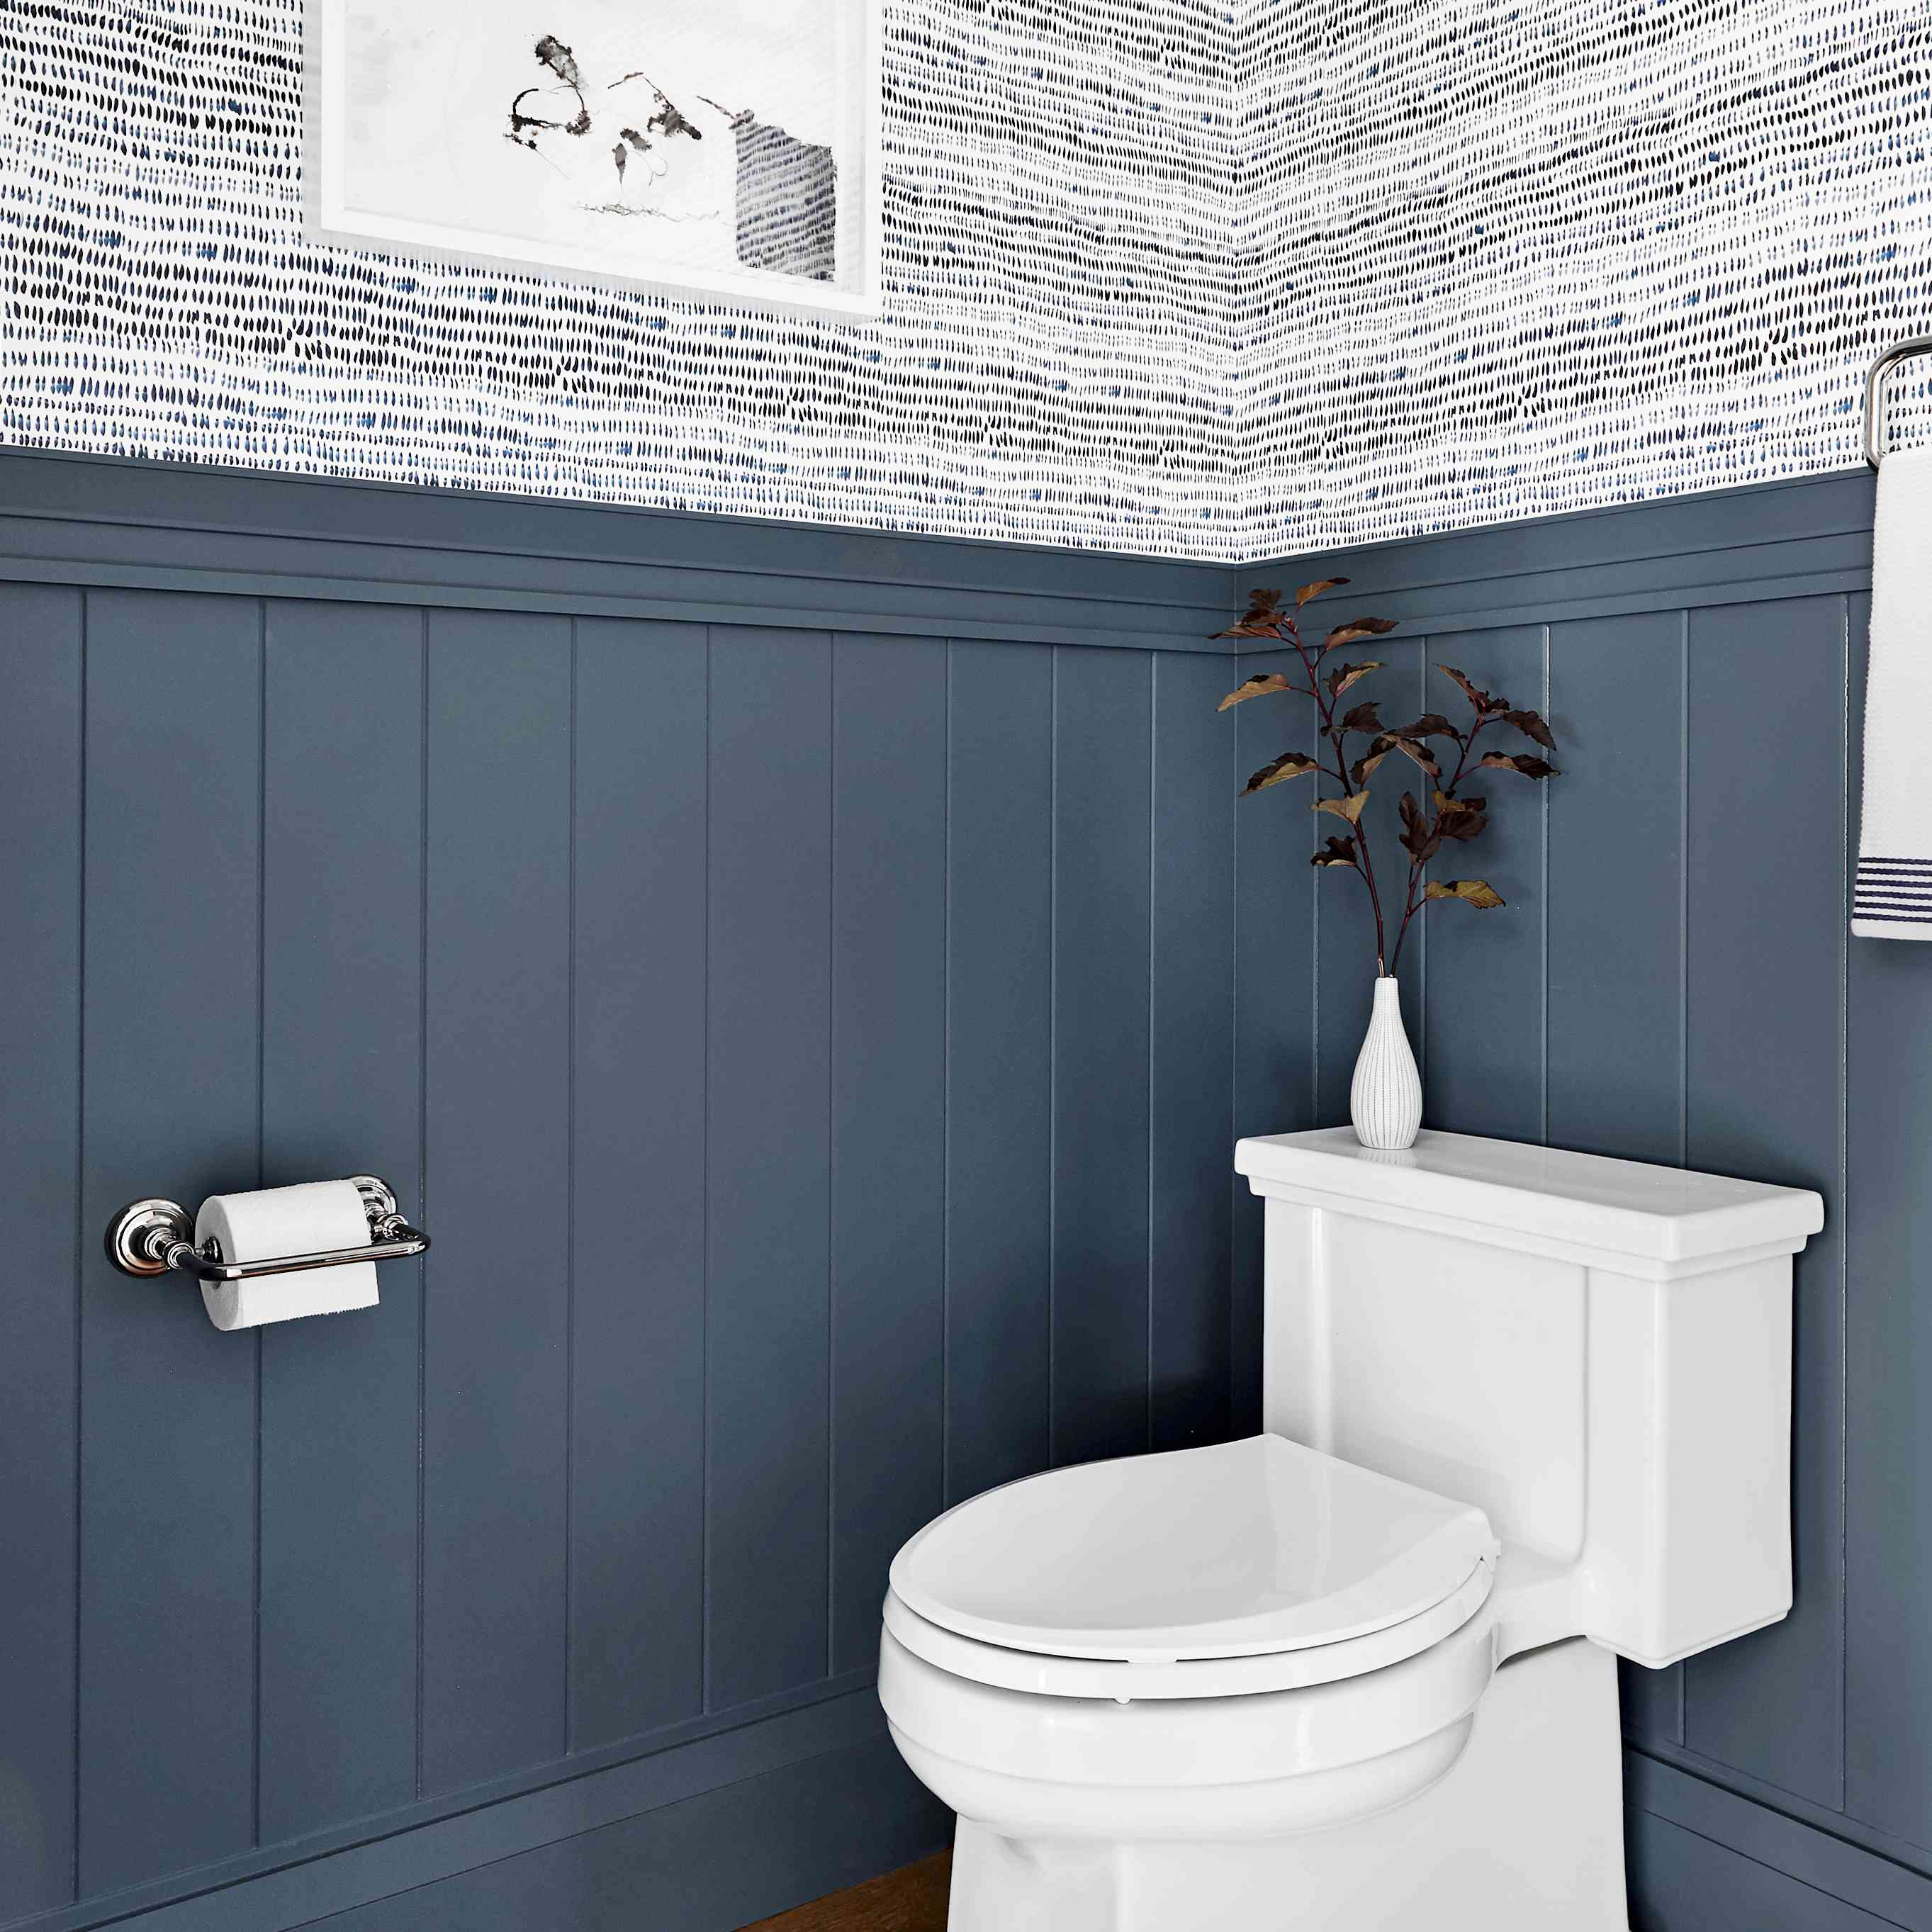 15 Bathrooms With Beautiful Wall Decor, Best Wall Covering For Bathrooms